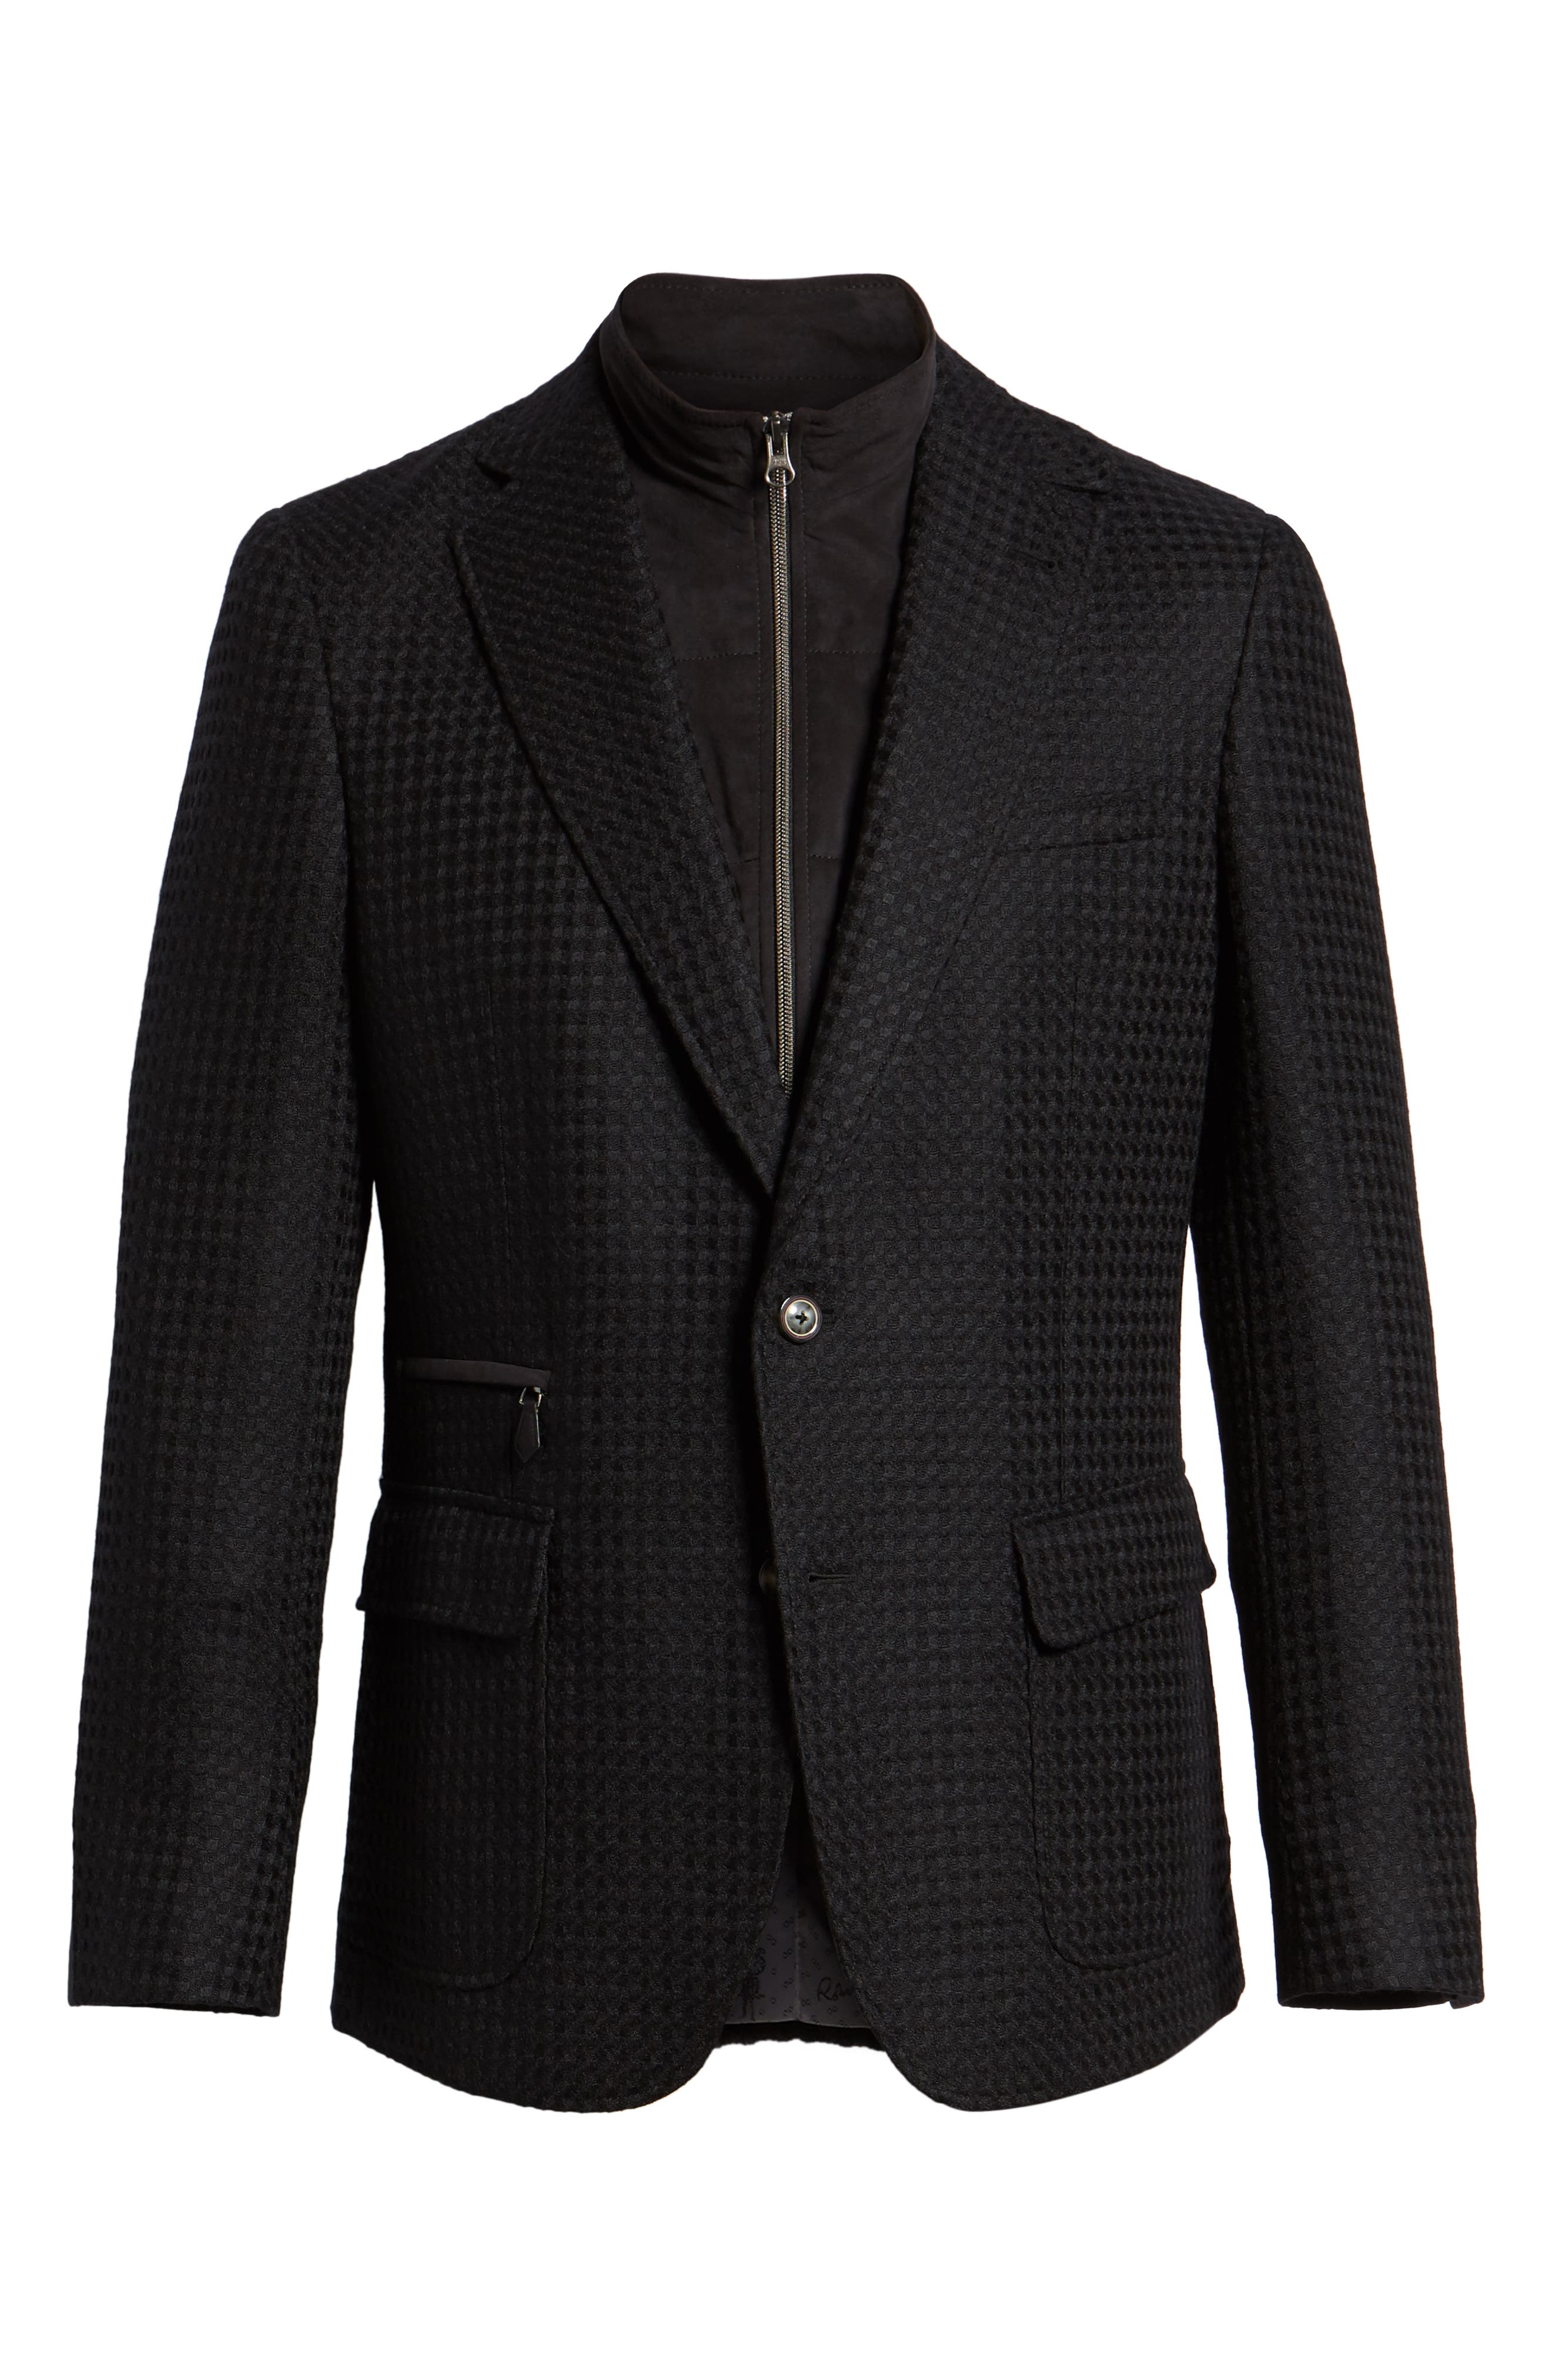 Downhill Tailored Wool Sport Coat,                             Alternate thumbnail 5, color,                             001